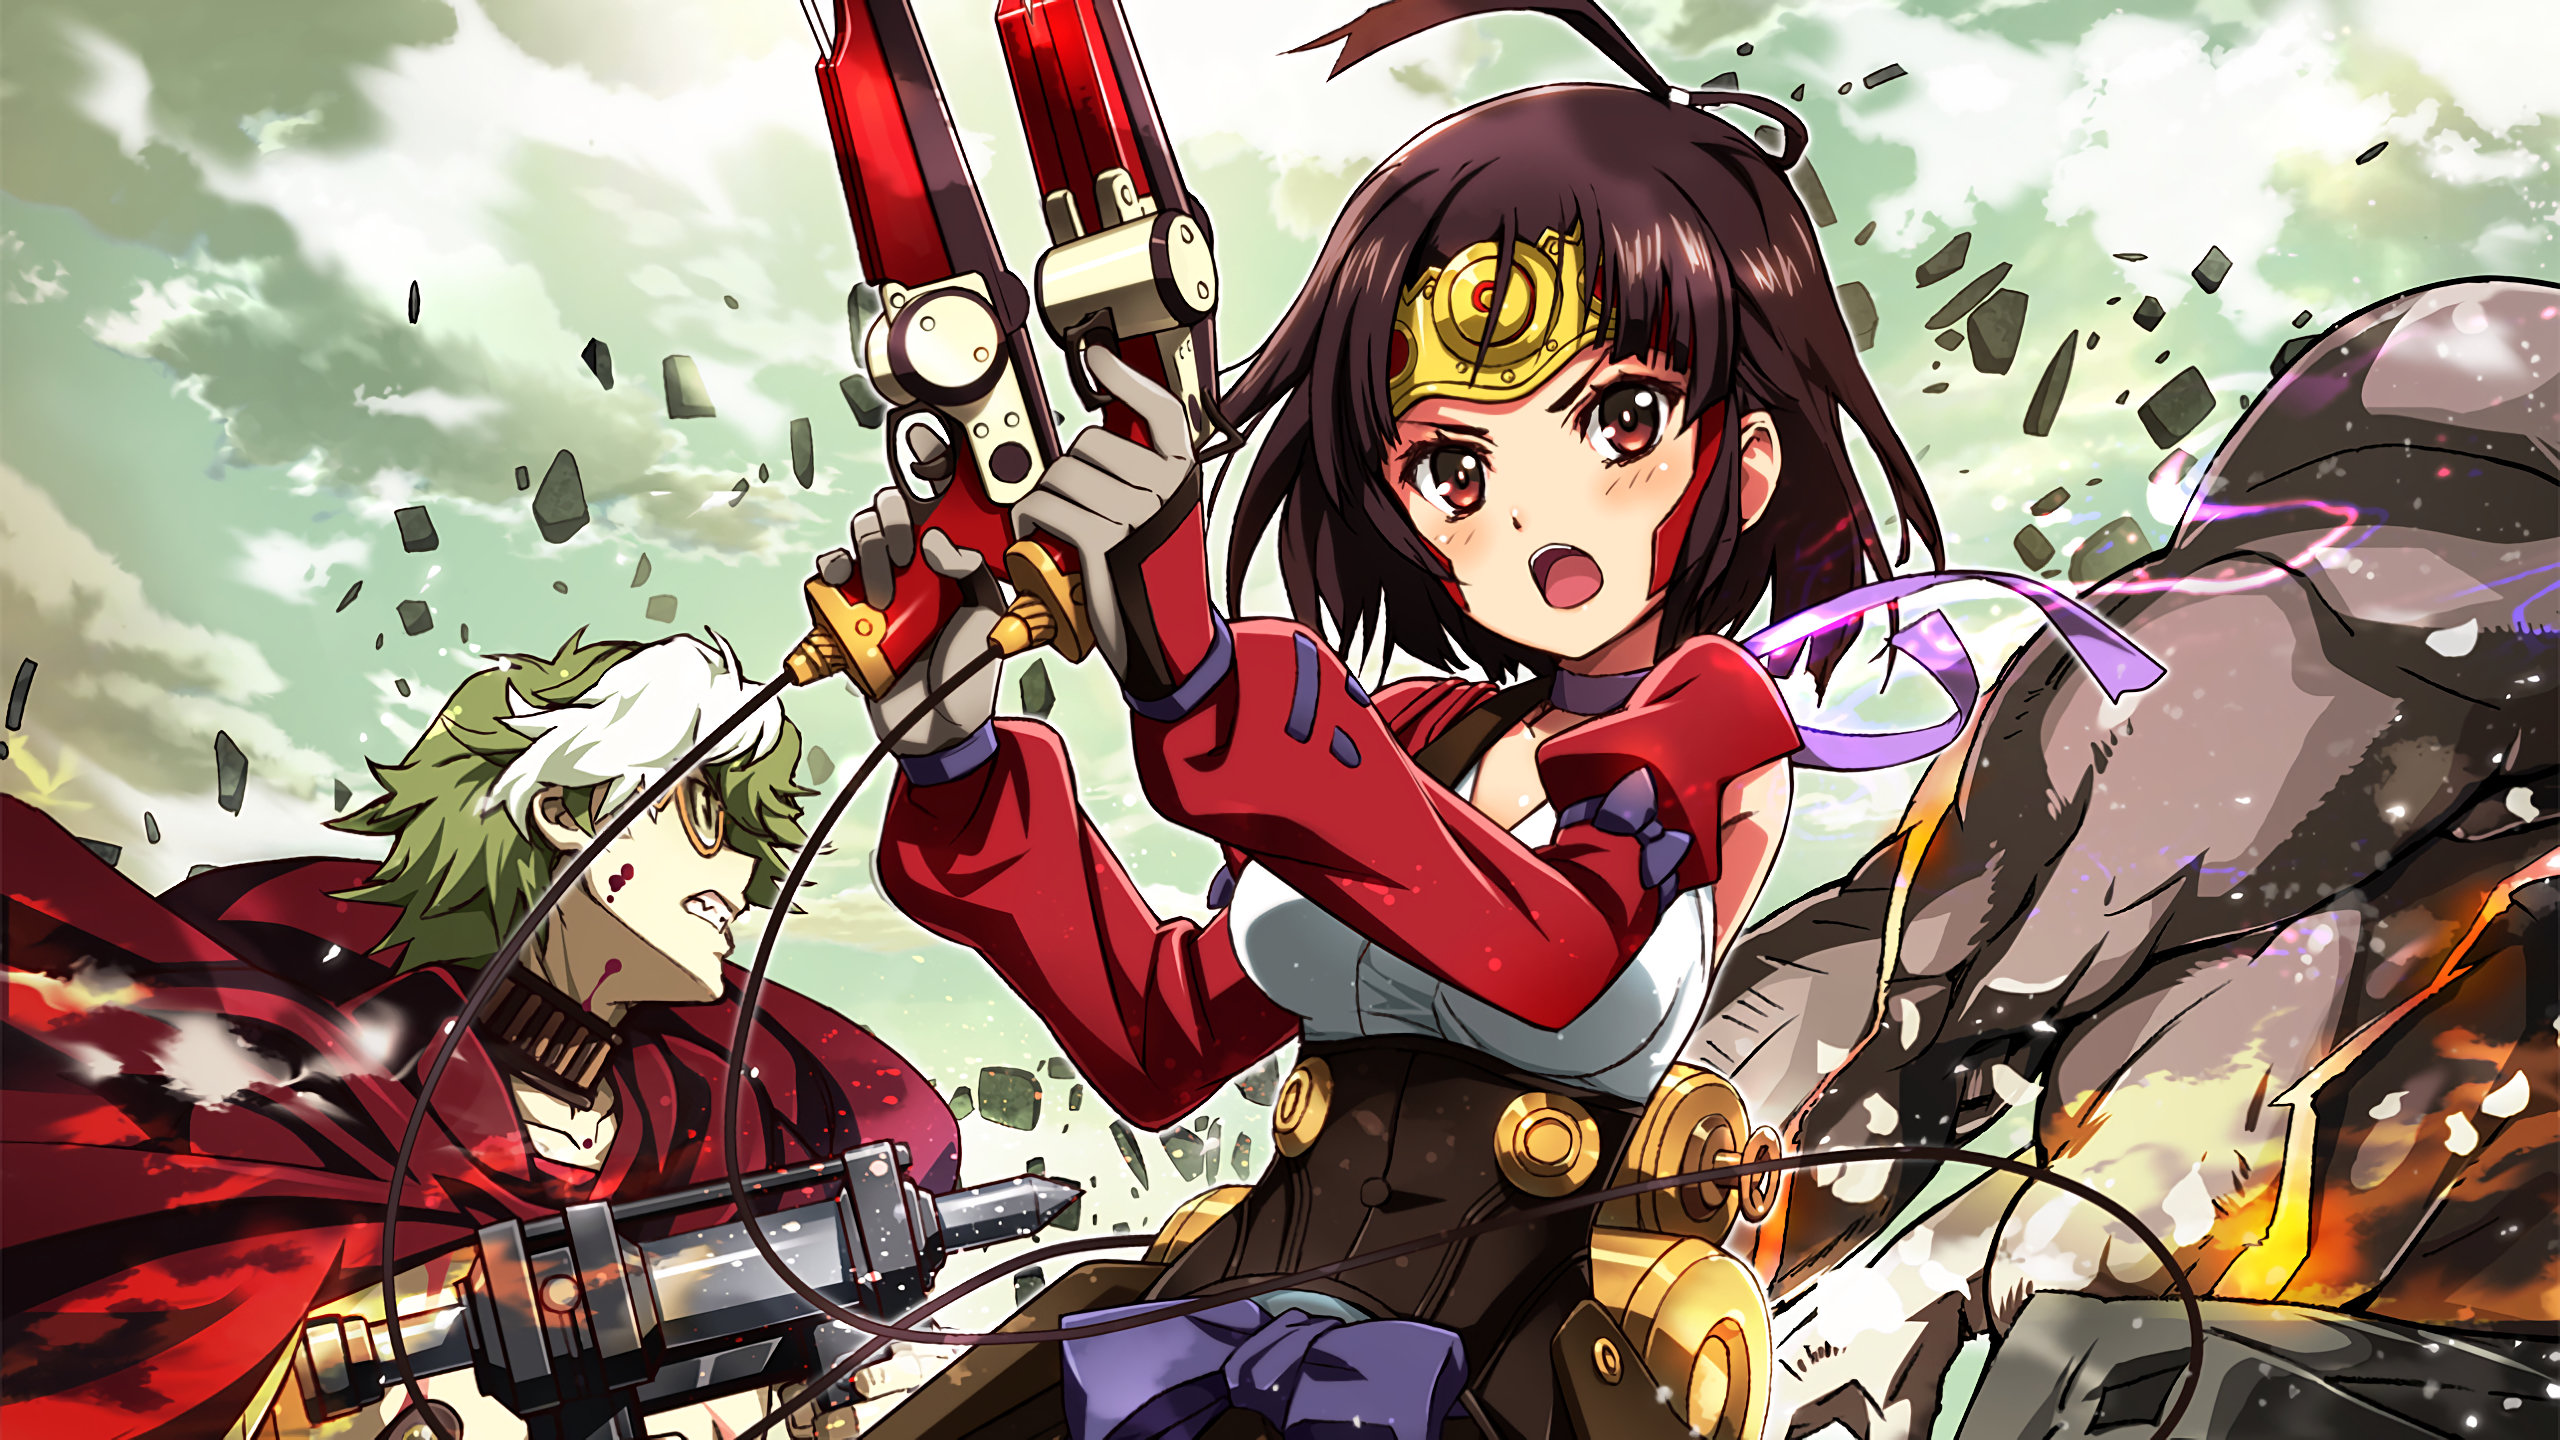 Awesome Kabaneri Of The Iron Fortress free wallpaper ID:116906 for hd 2560x1440 PC